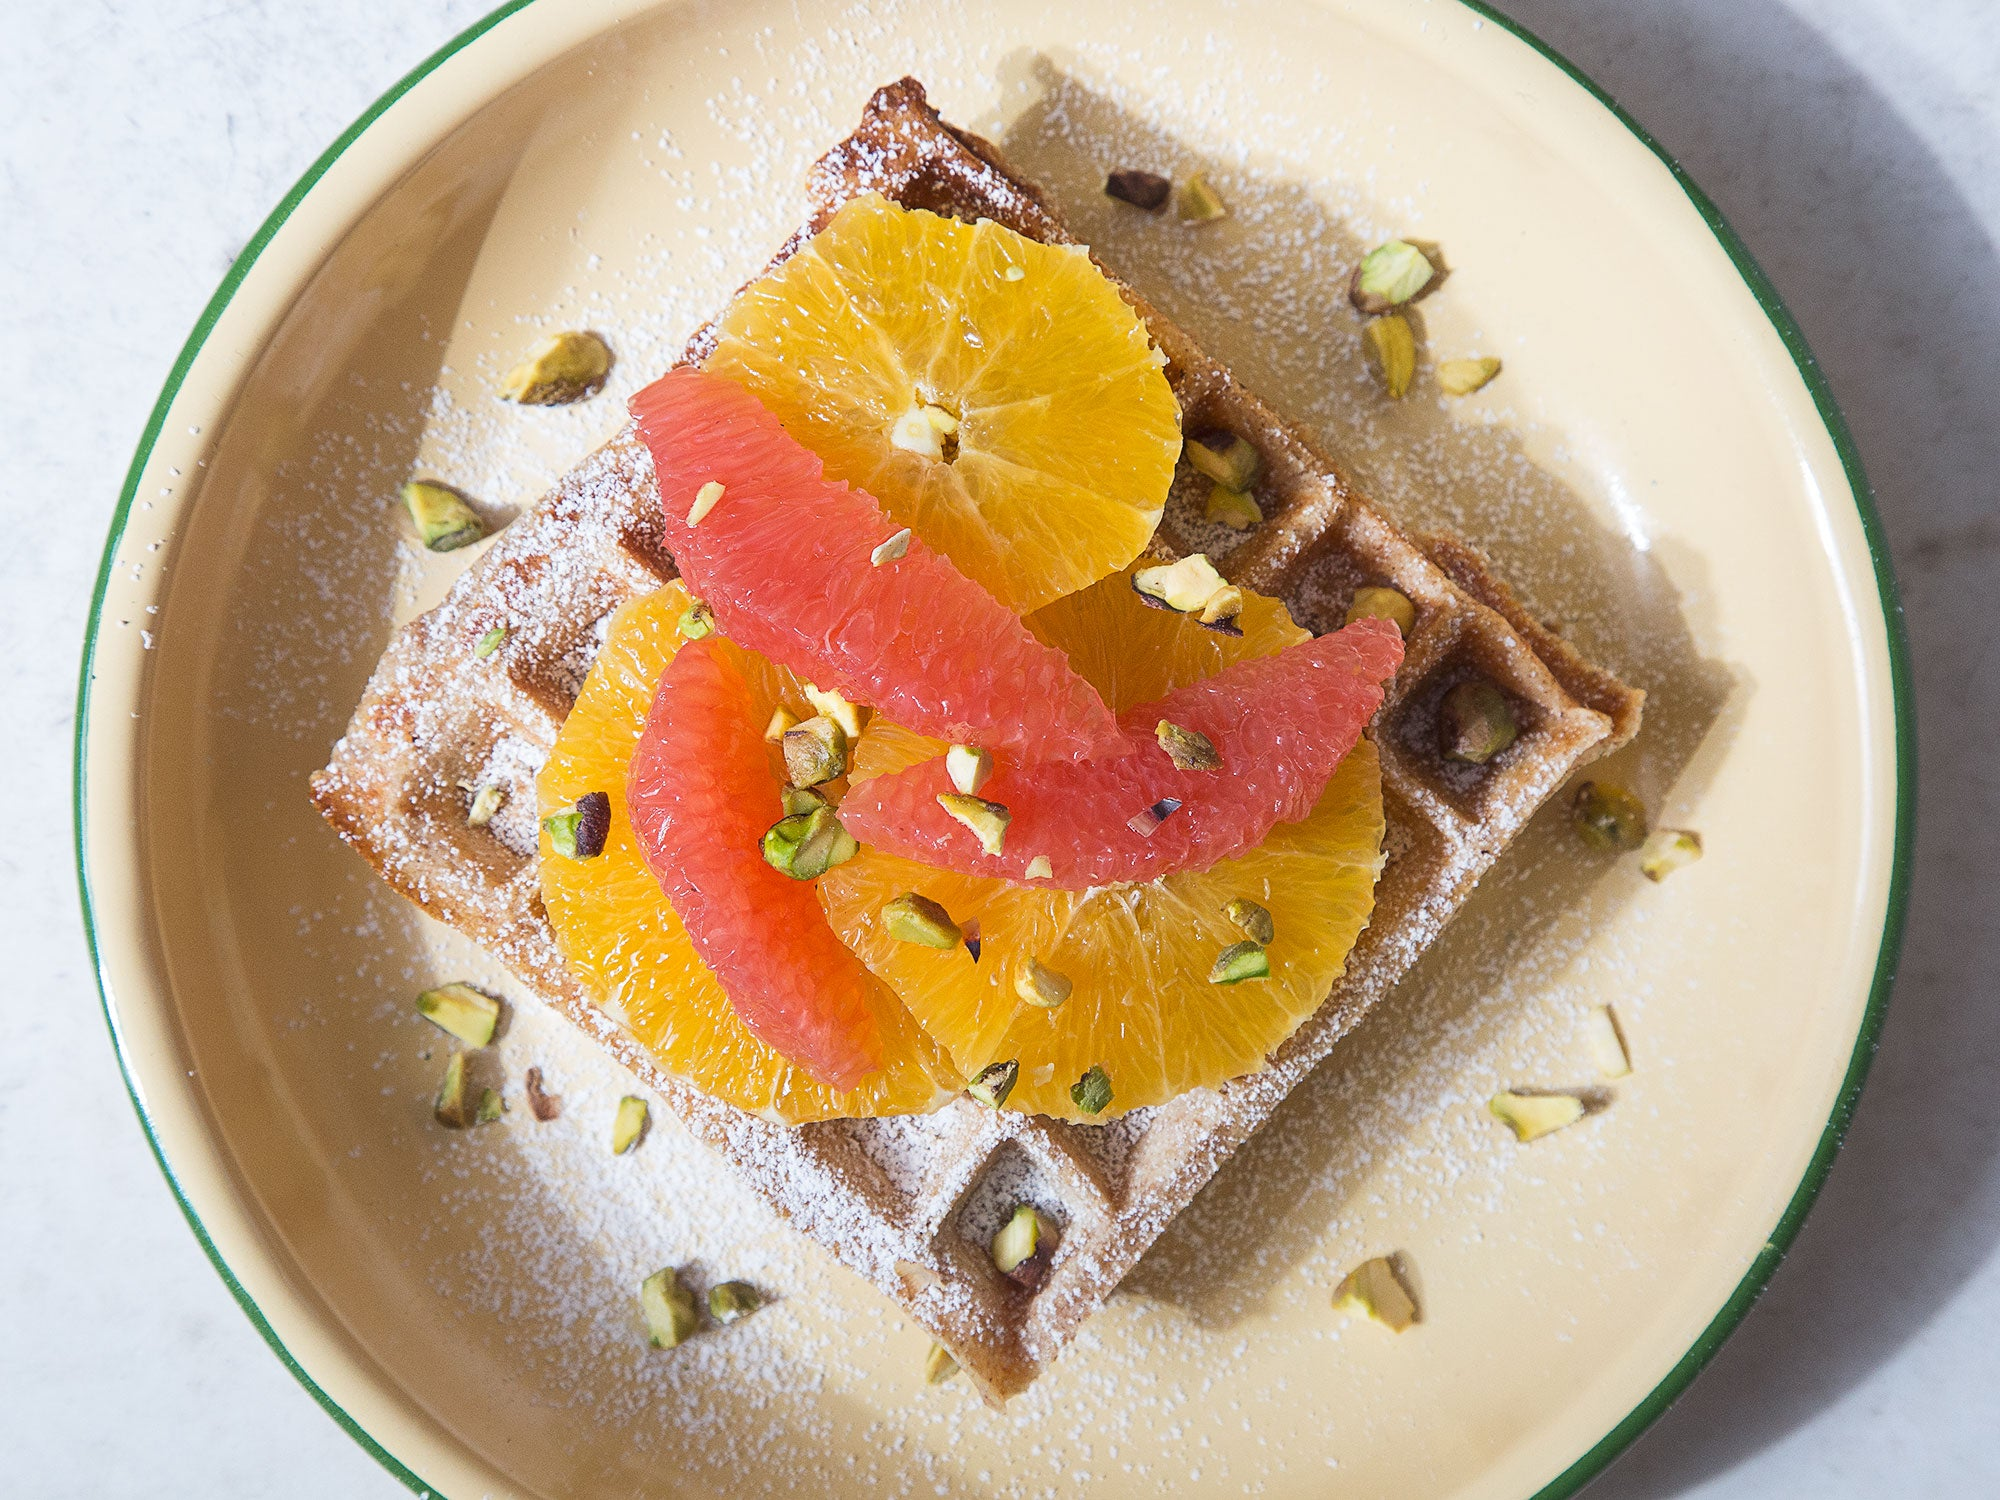 Homemade Waffles Deserve More Than Maple Syrup